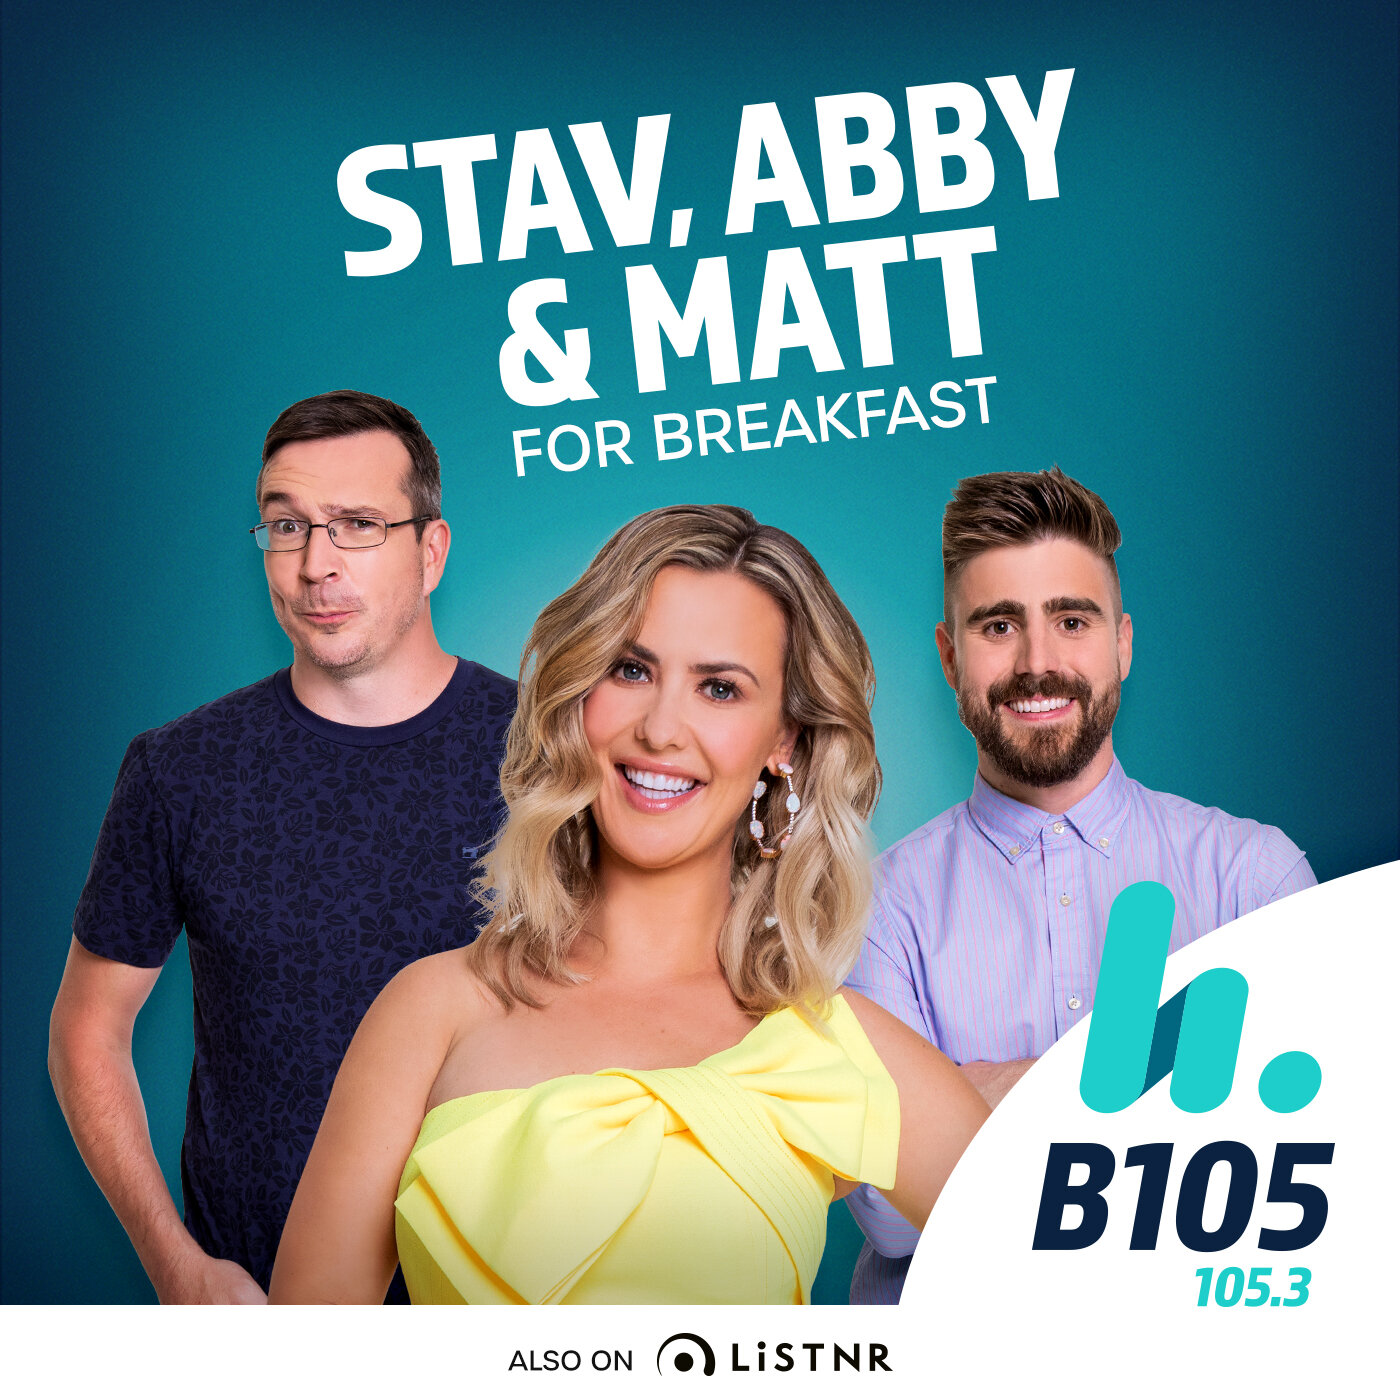 2018/03/21 - Explosive details about MAFS's Ash, Sean and Justin! And an Ed Sheeran Proposal!